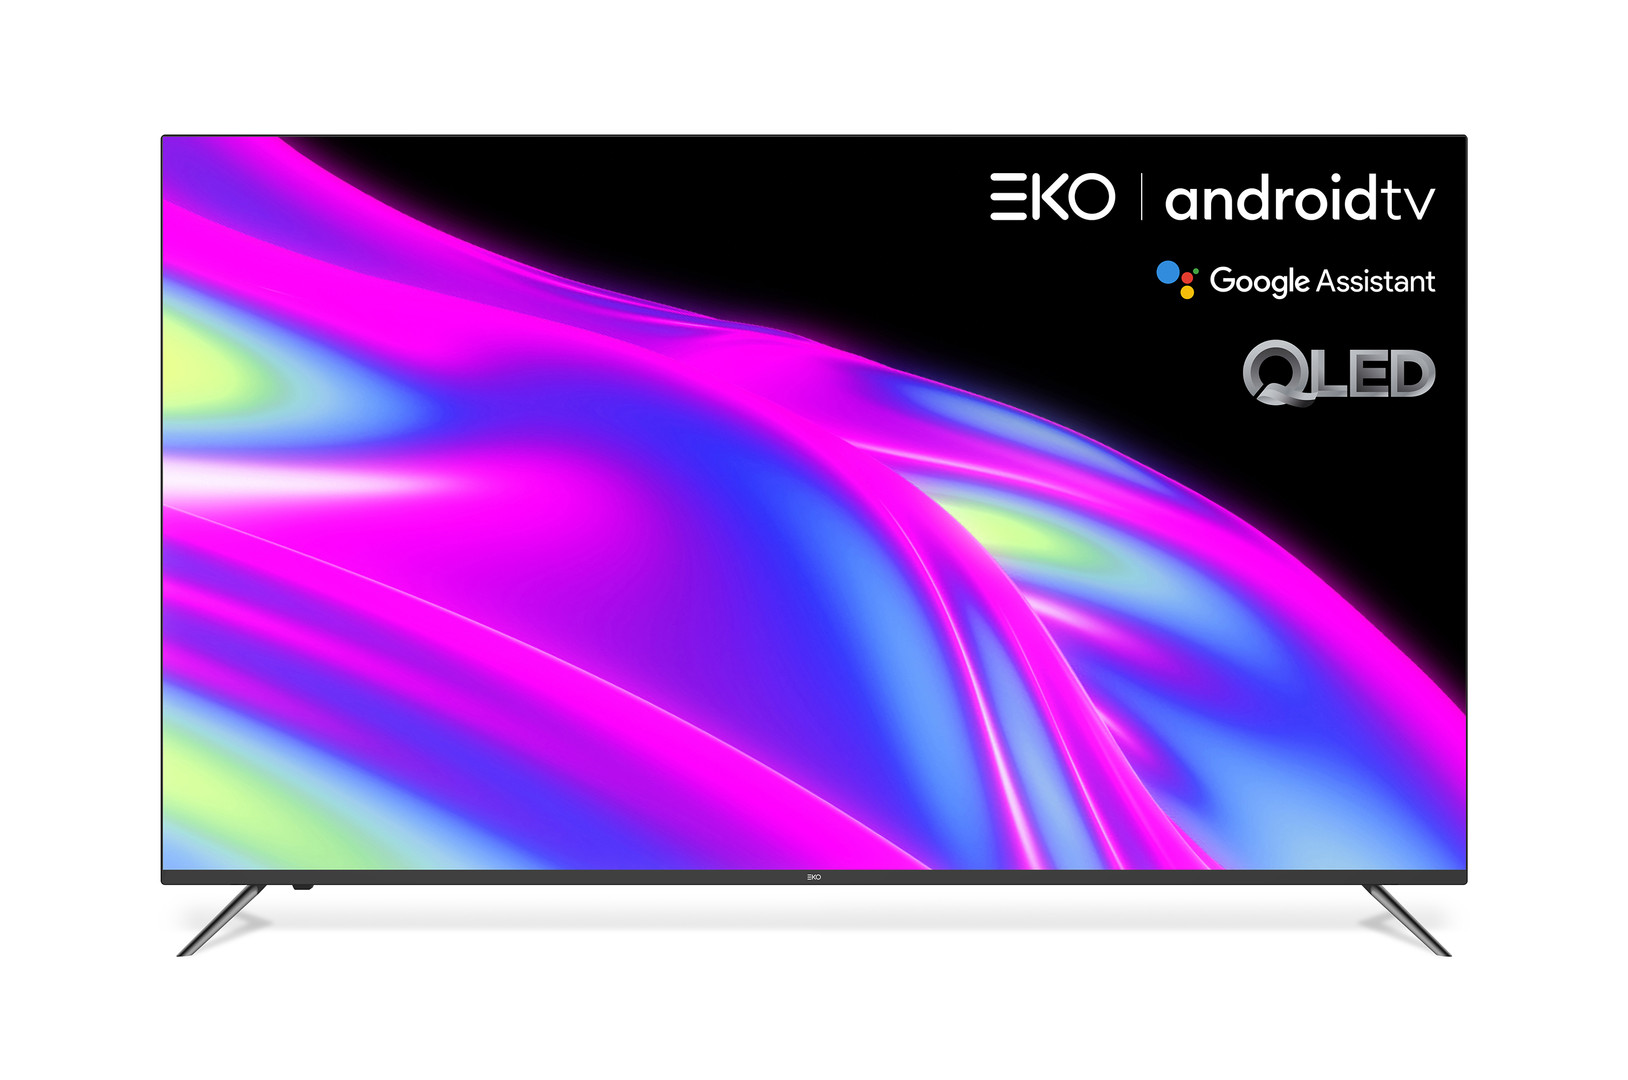 55inch - QLED - Android TV.jpg